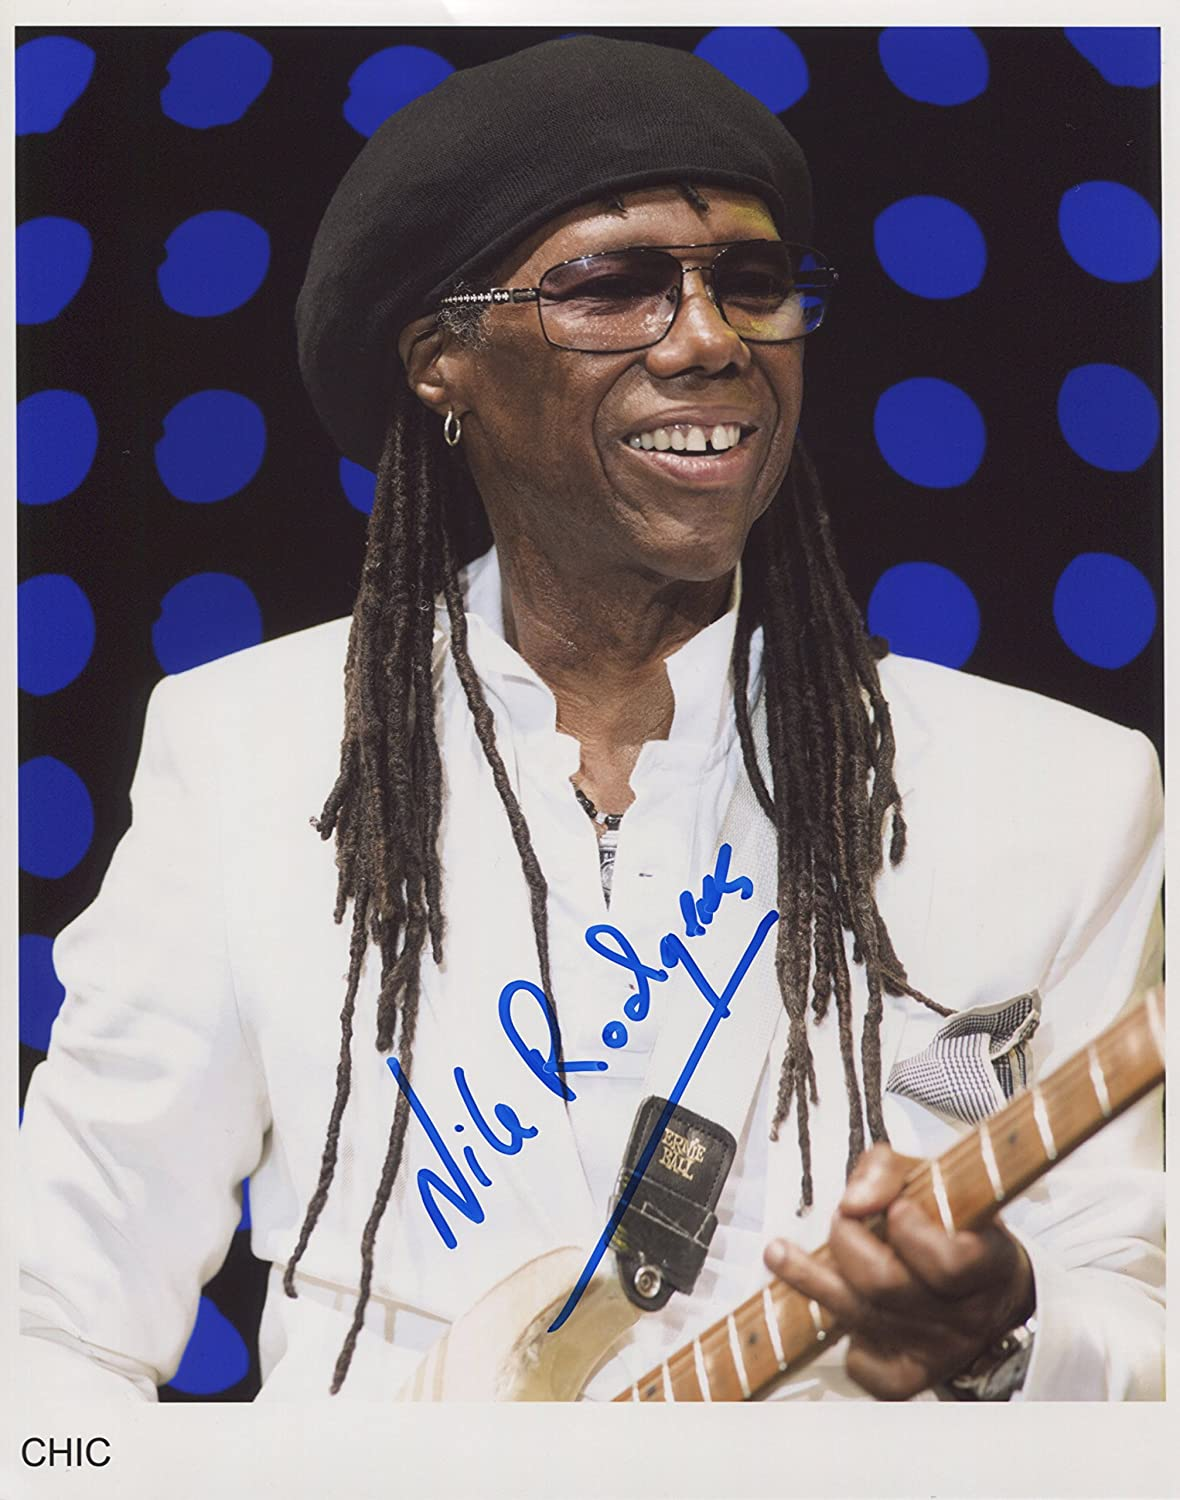 Nile Rodgers Chic SIGNED Photo 1st Generation PRINT Ltd 150 Certificate 2